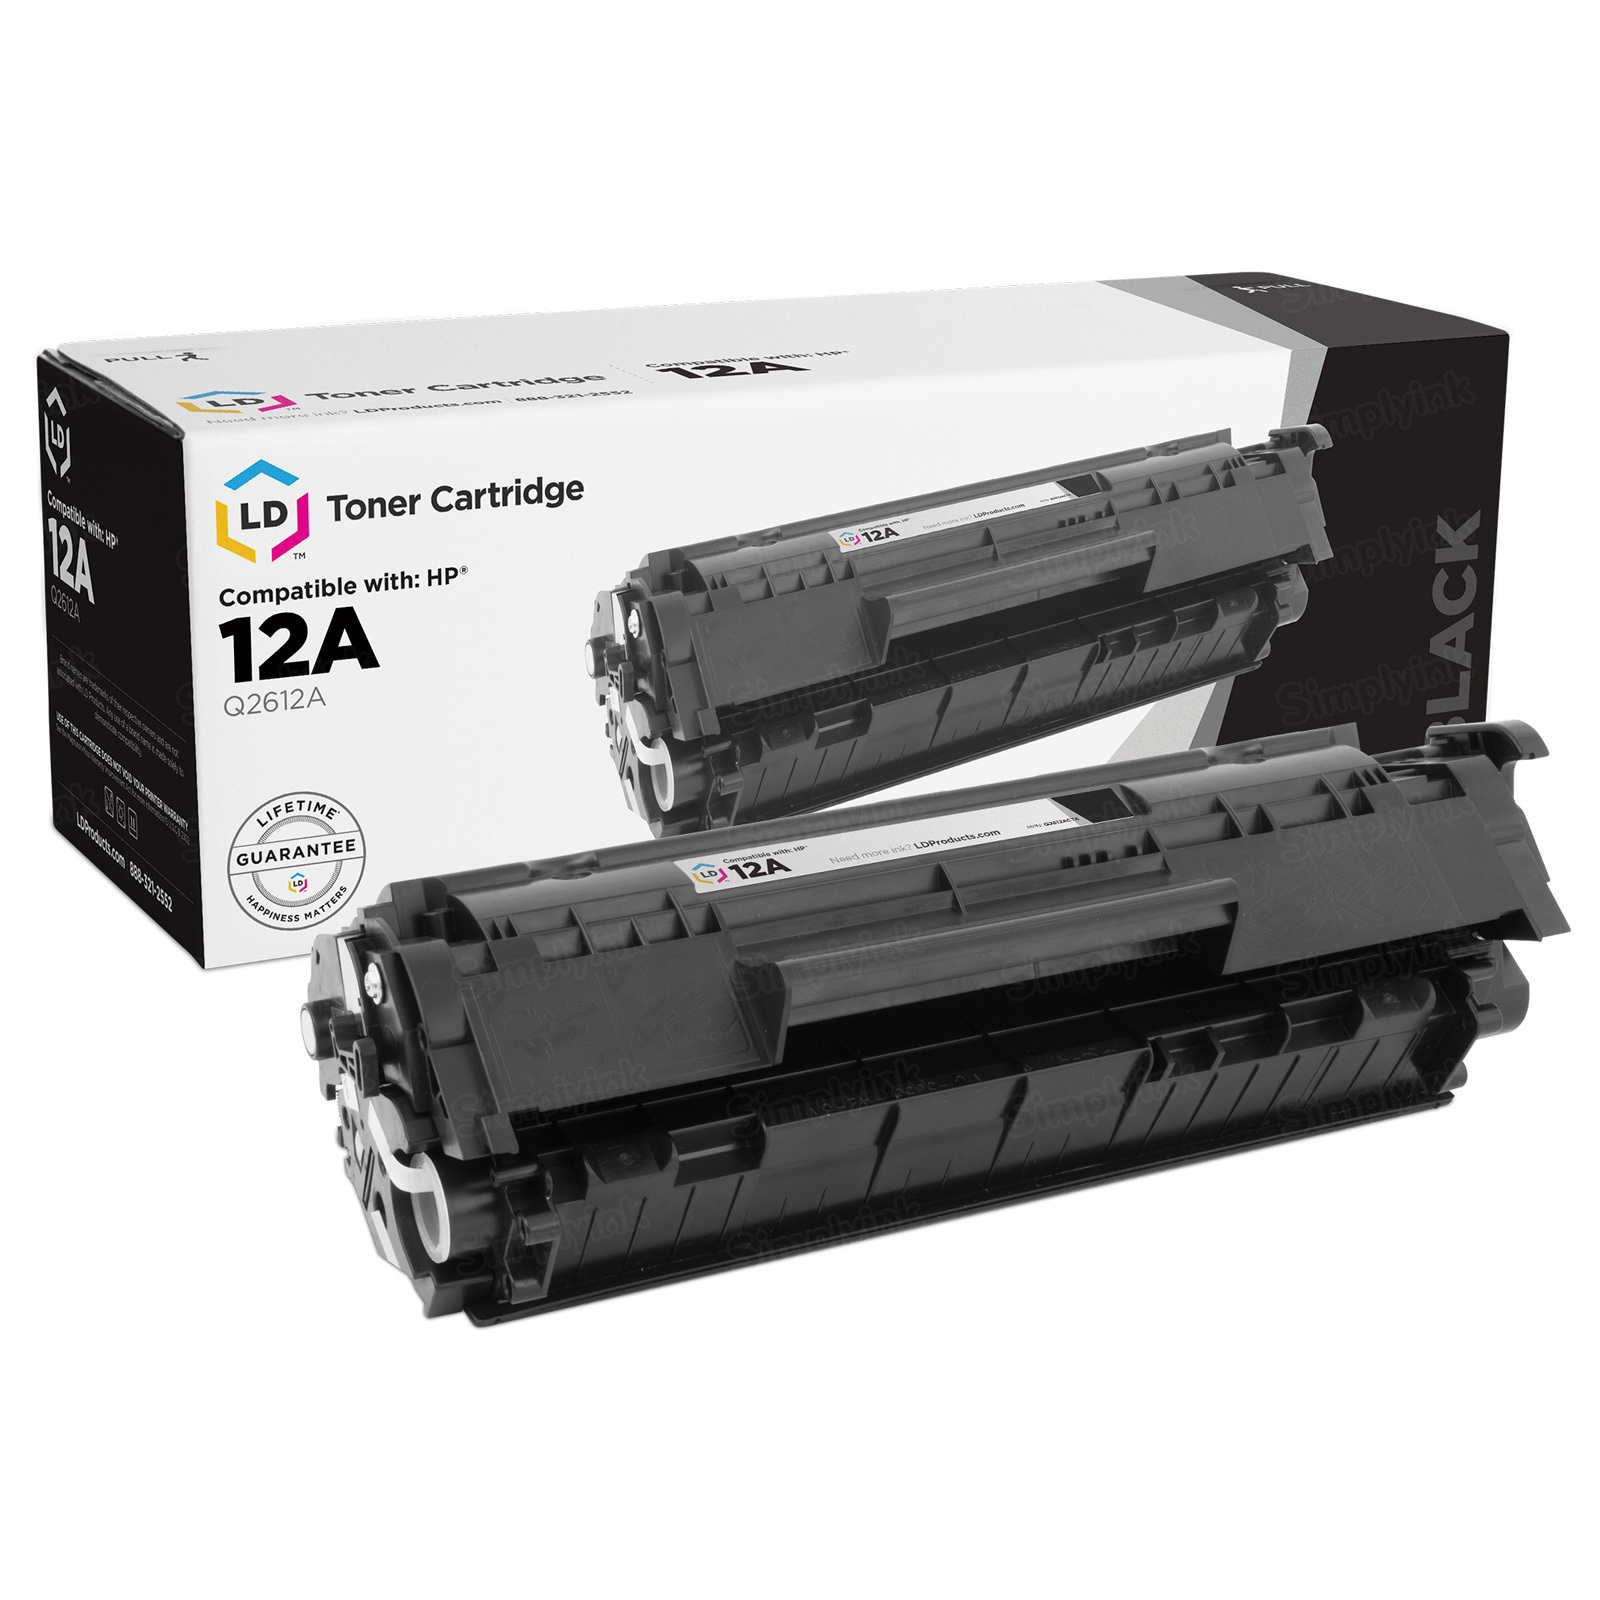 Replacement Black Toner for HP 12A